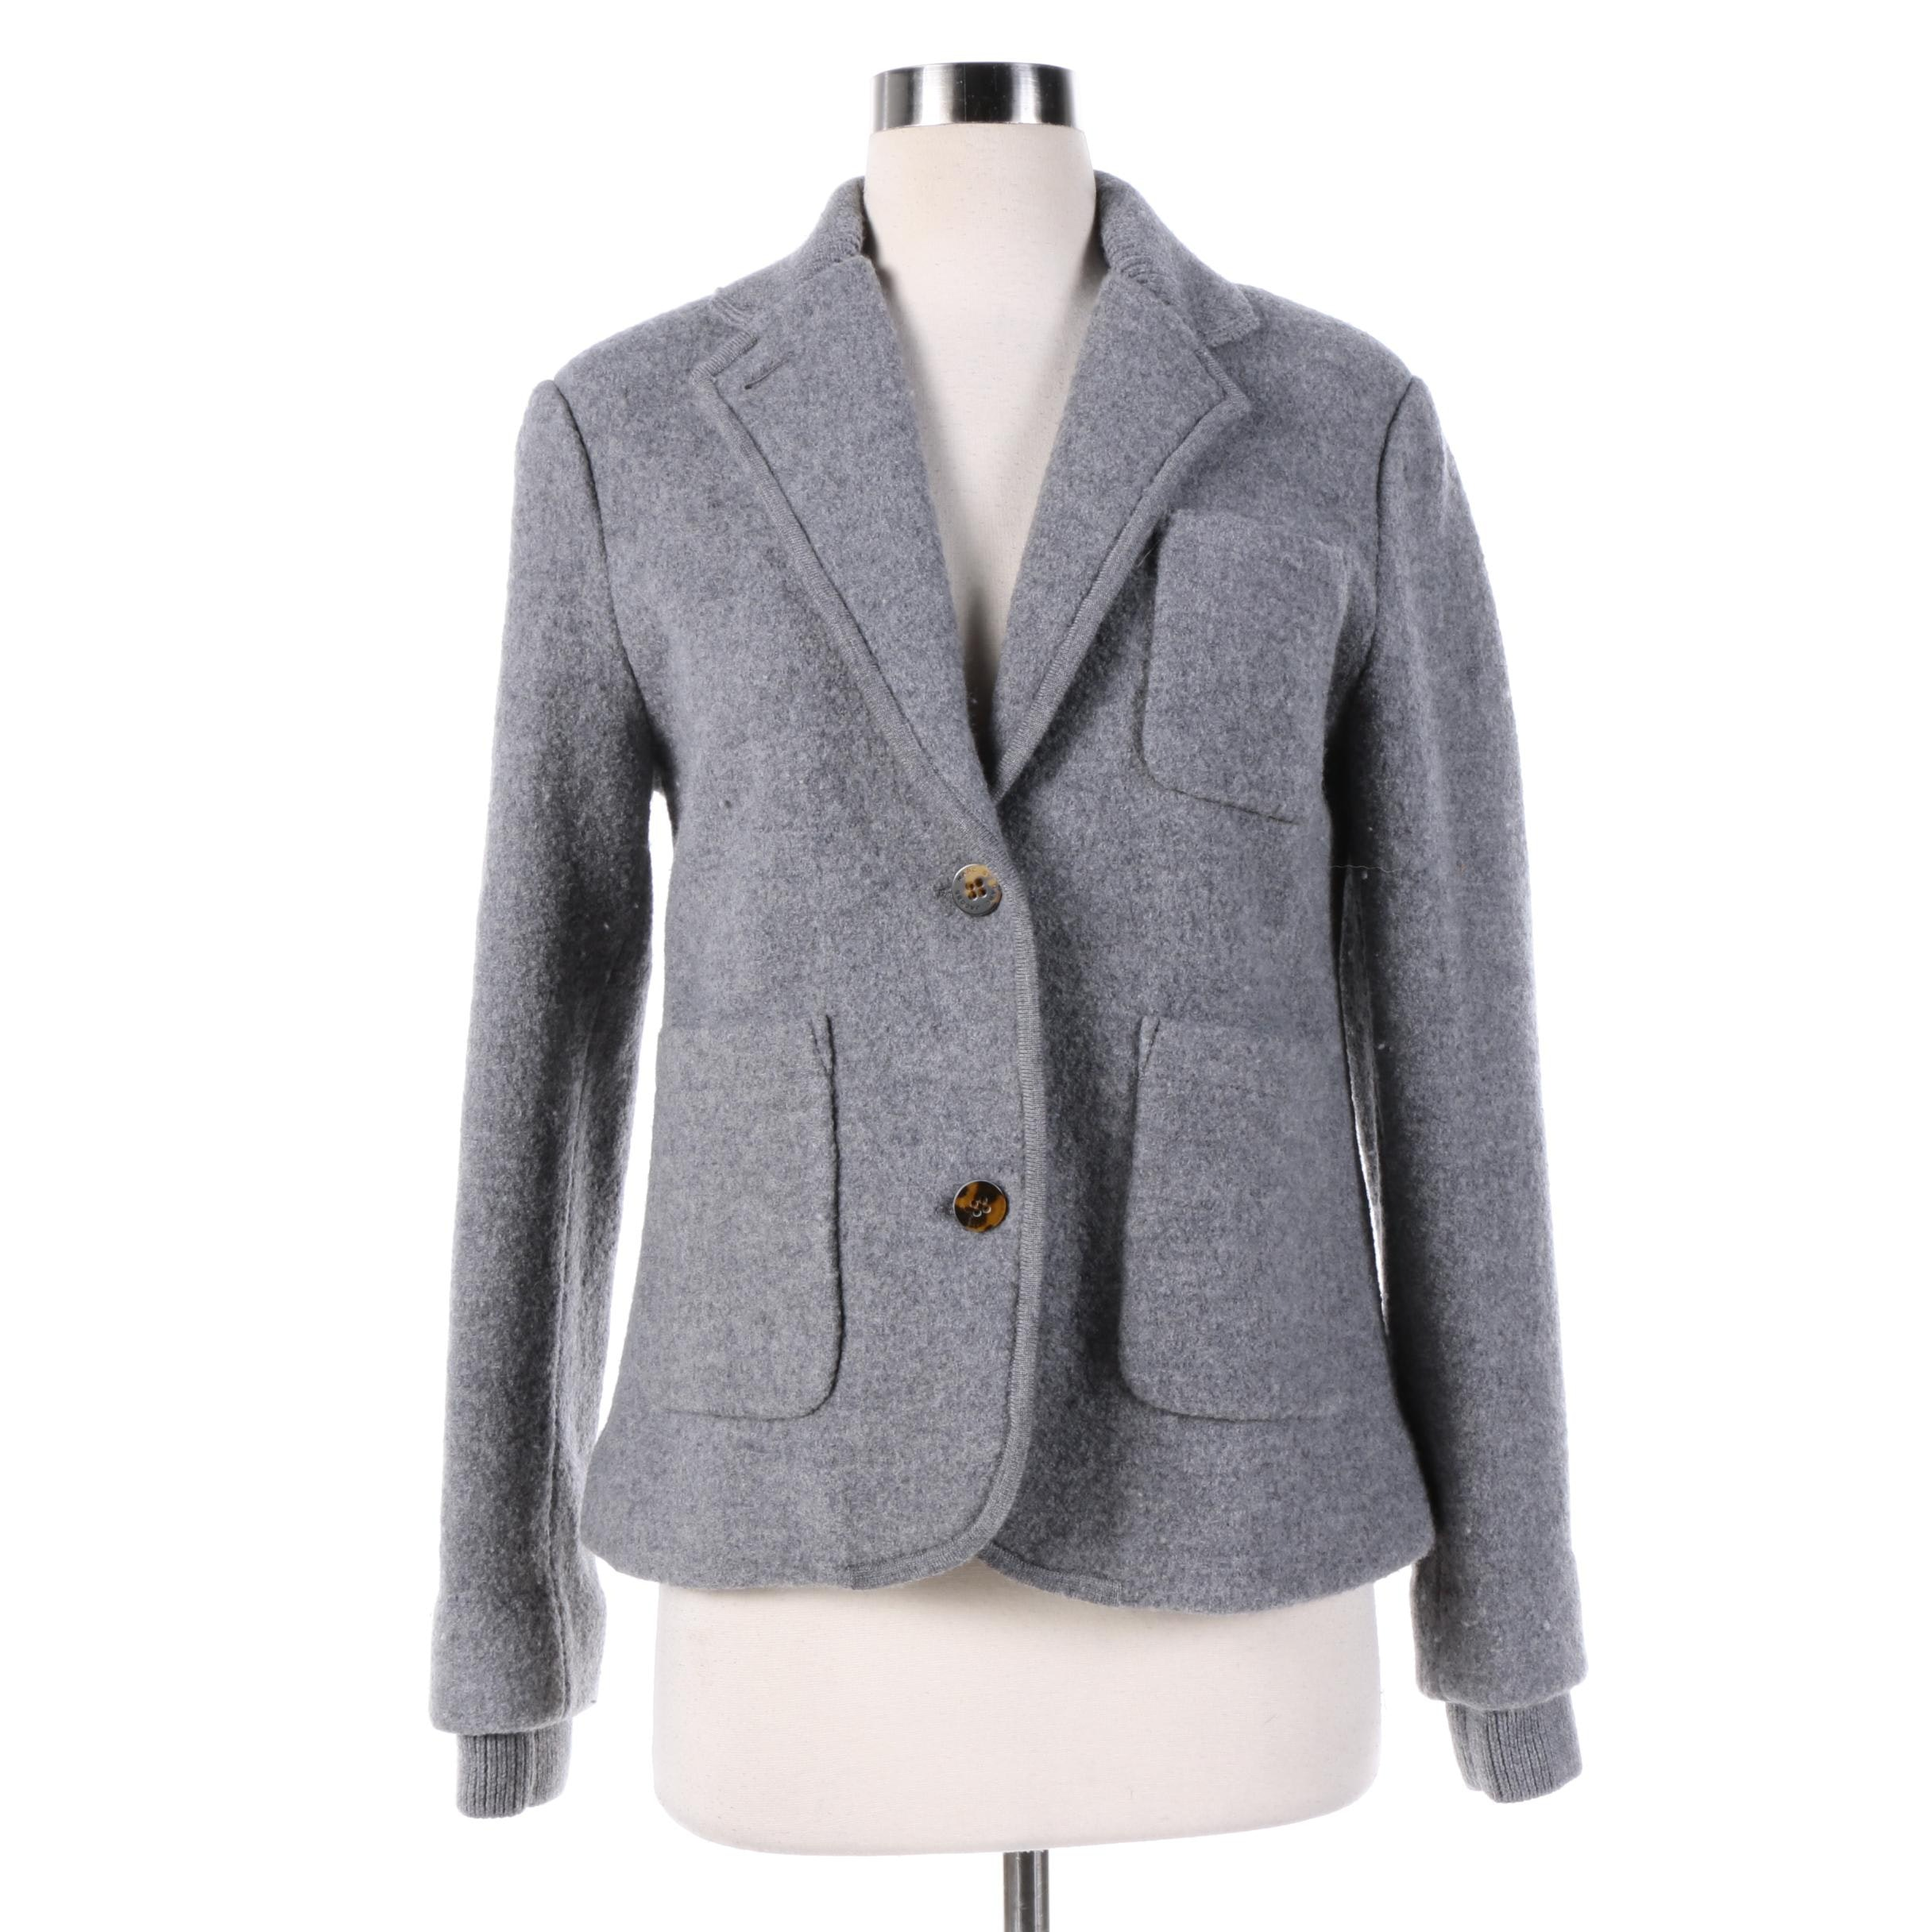 Women's Marc by Marc Jacobs Grey Wool Jacket